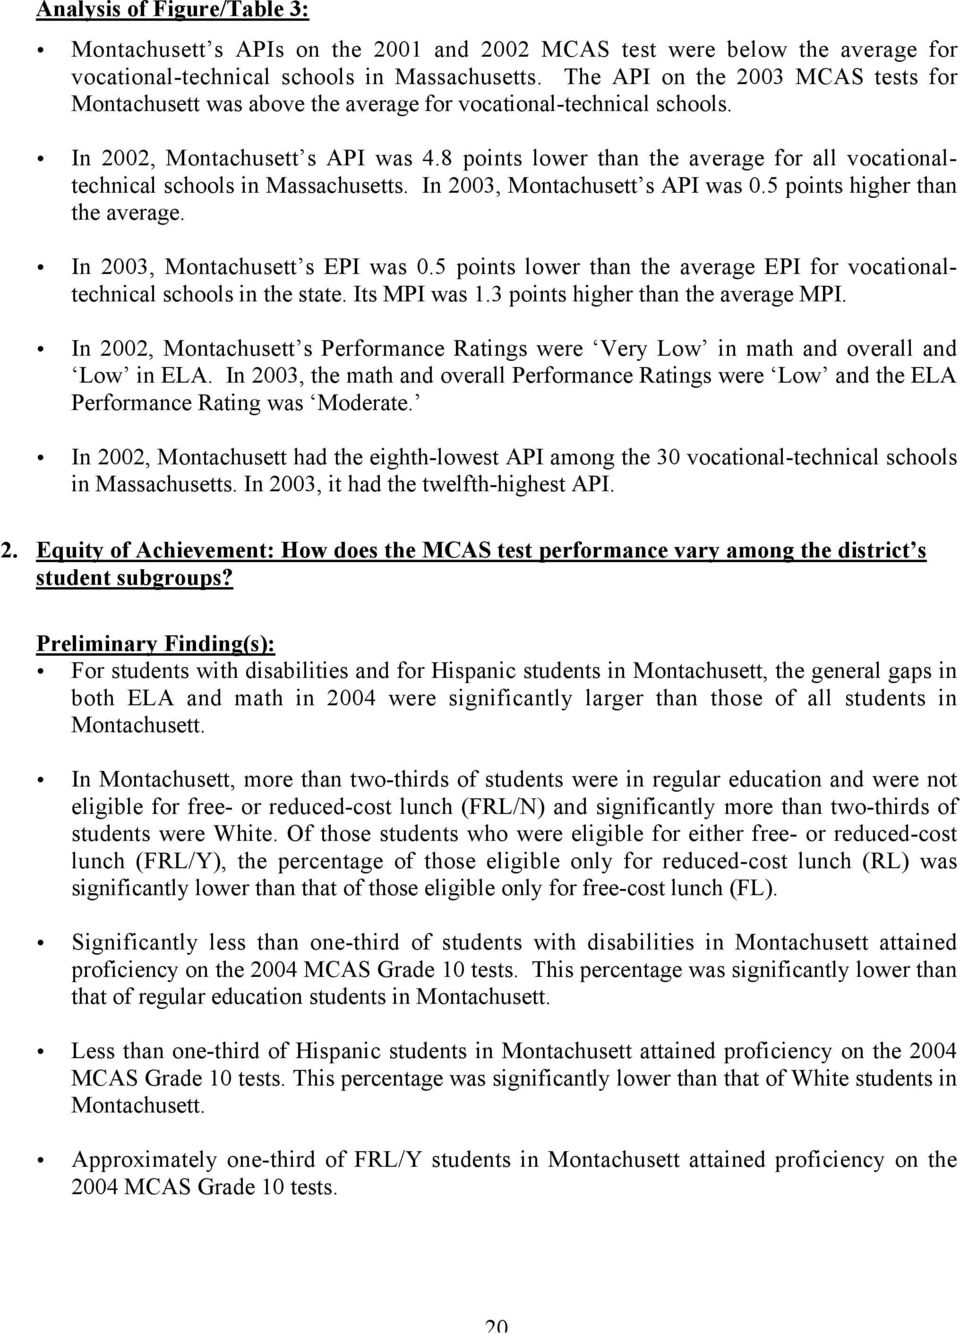 8 points lower than the average for all vocationaltechnical schools in Massachusetts. In 2003, Montachusett s API was 0.5 points higher than the average. In 2003, Montachusett s EPI was 0.